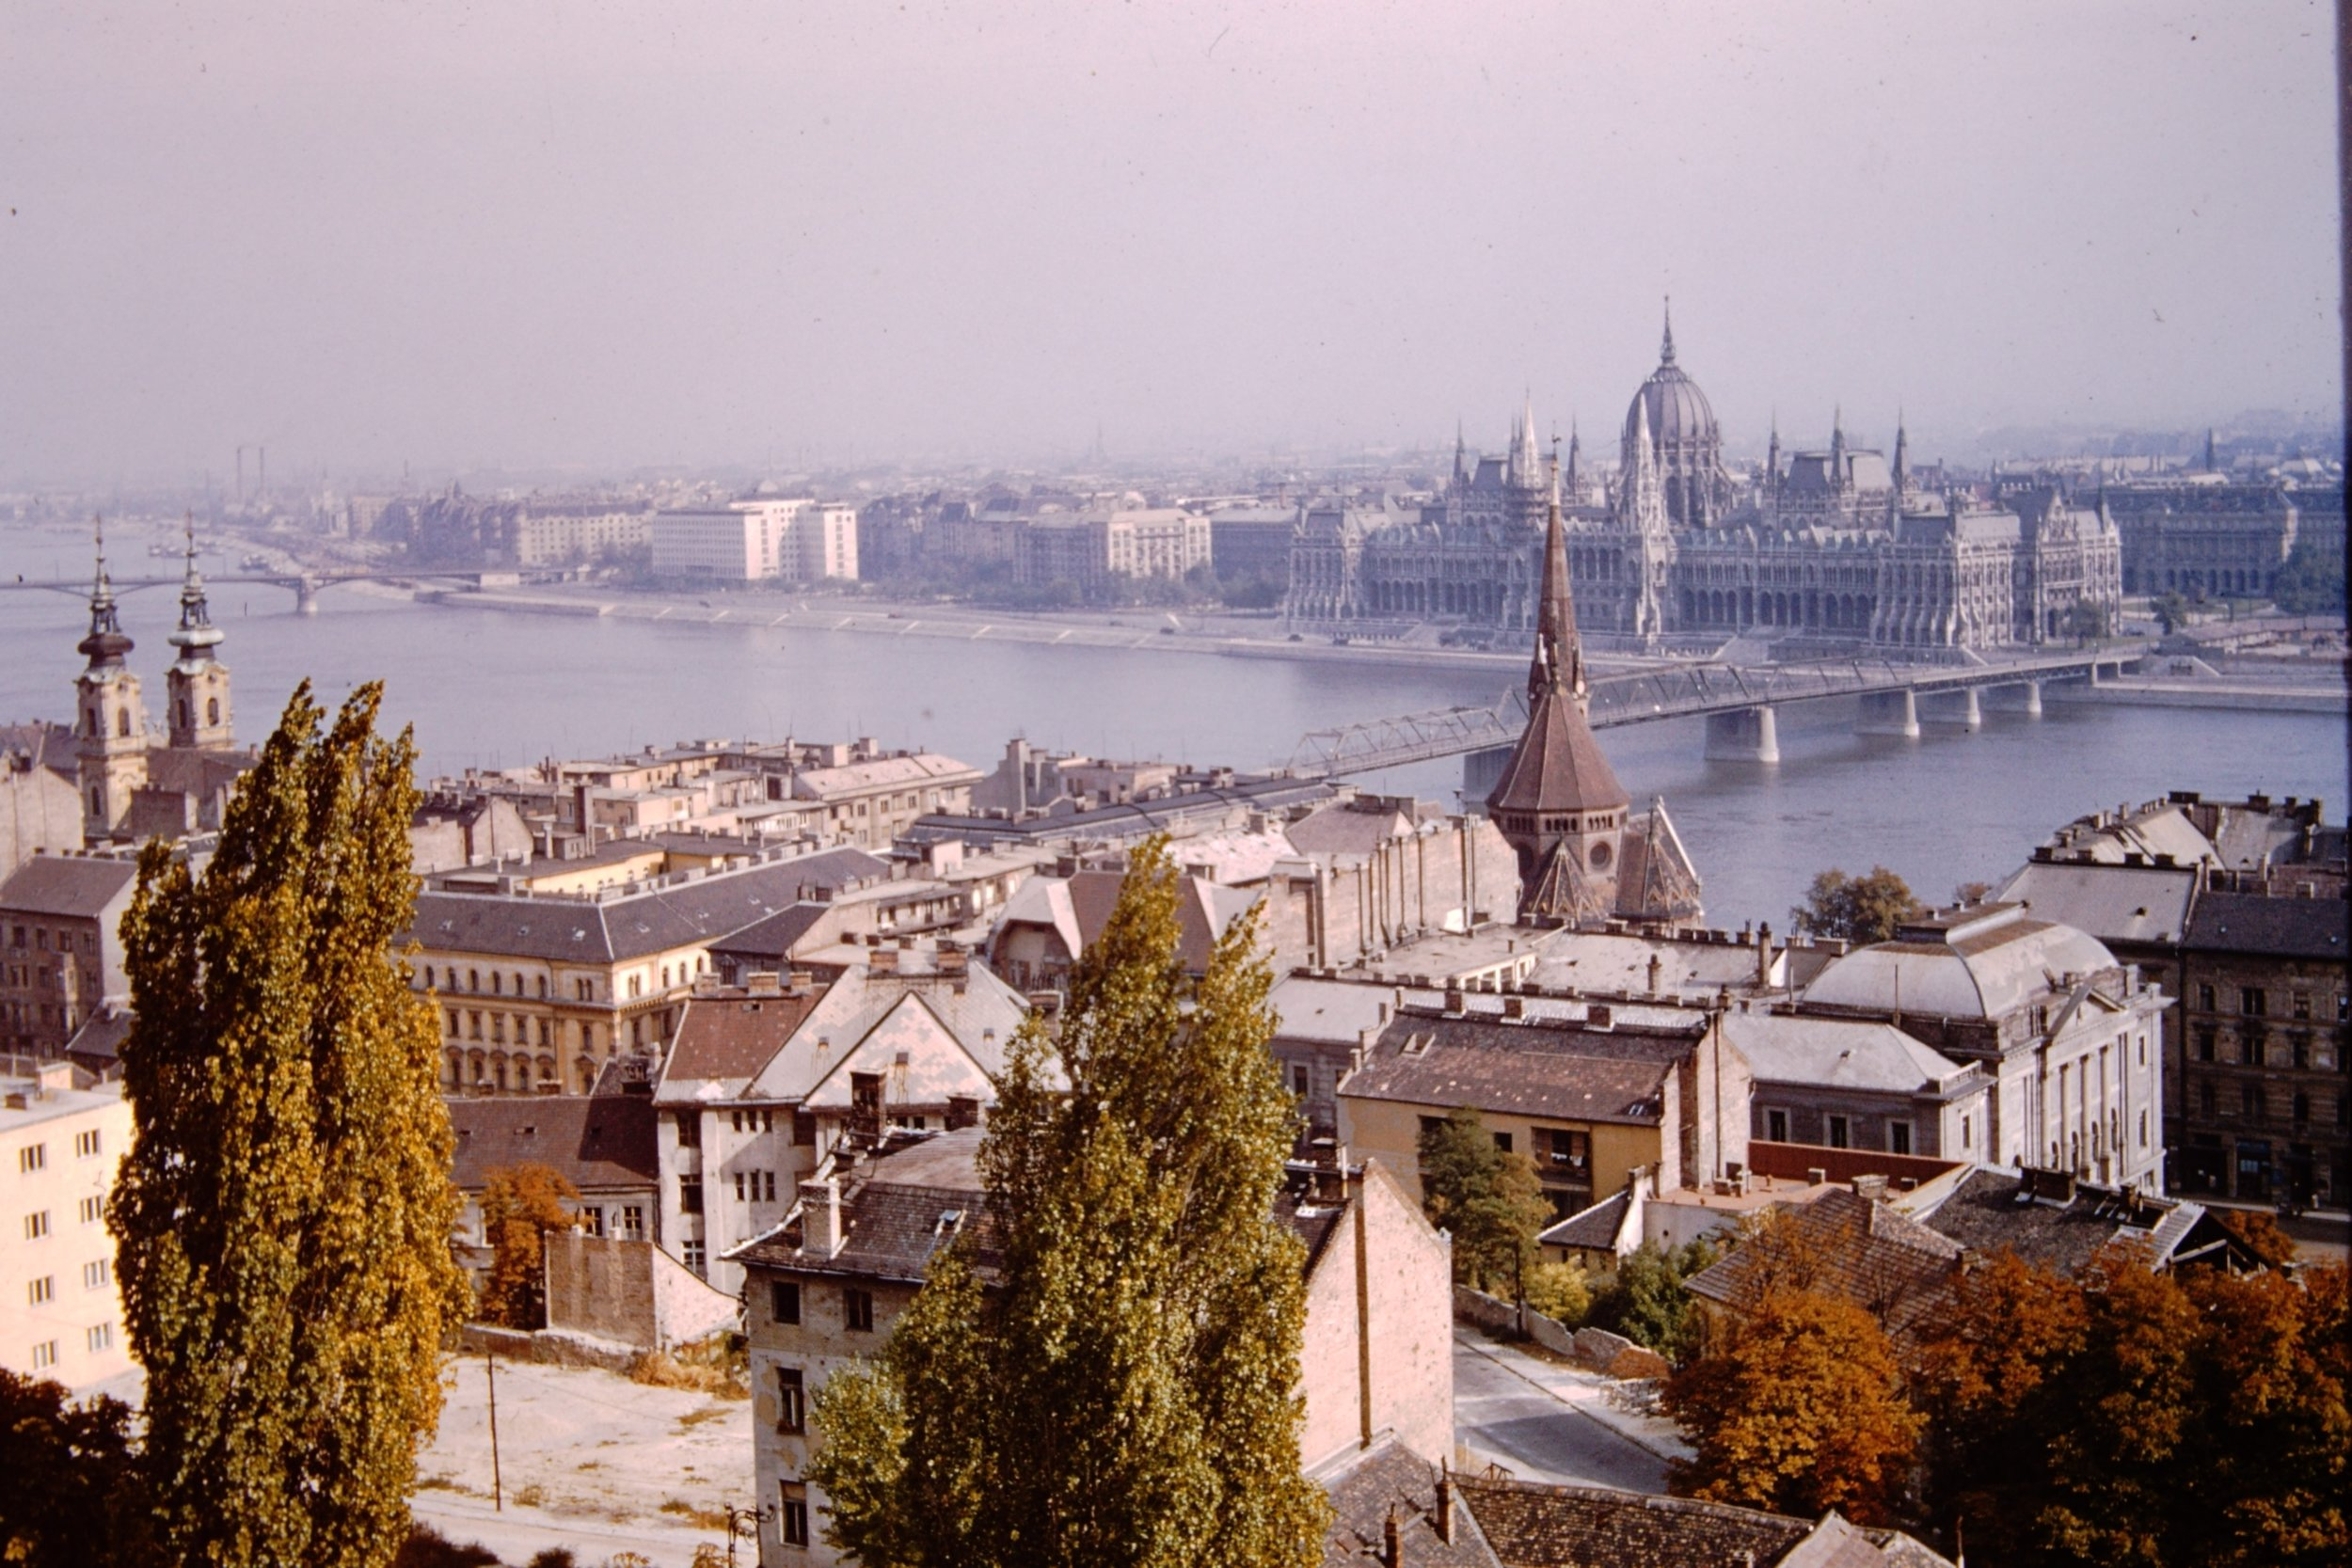 spies & masters - A COLD WAR WALKING TOUR IN BUDAPEST